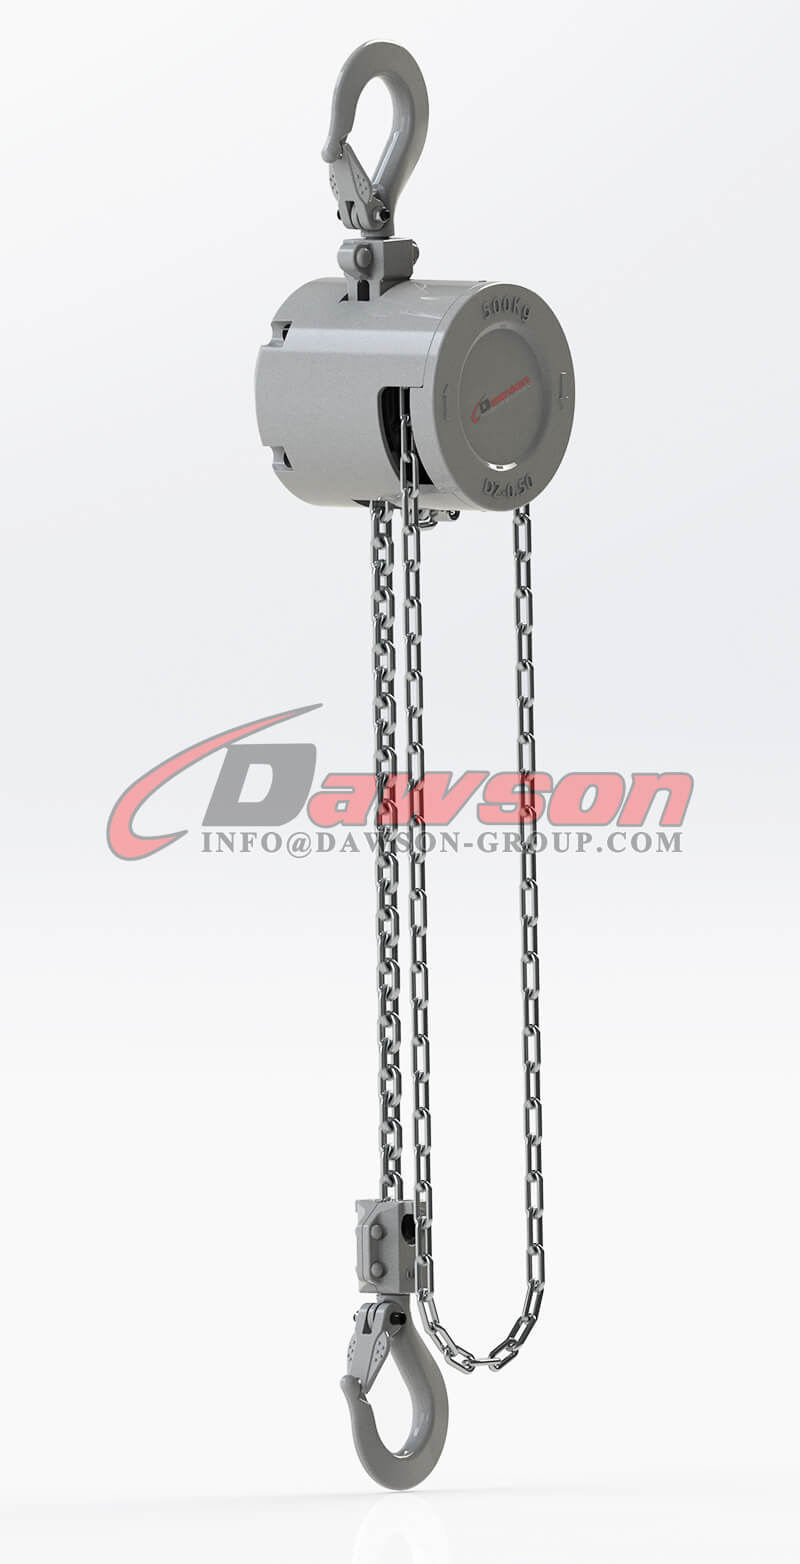 250KG Mini Aluminum Alloy Chain Hoist, Chain Block - Dawson Group Ltd. - China Manufacturer